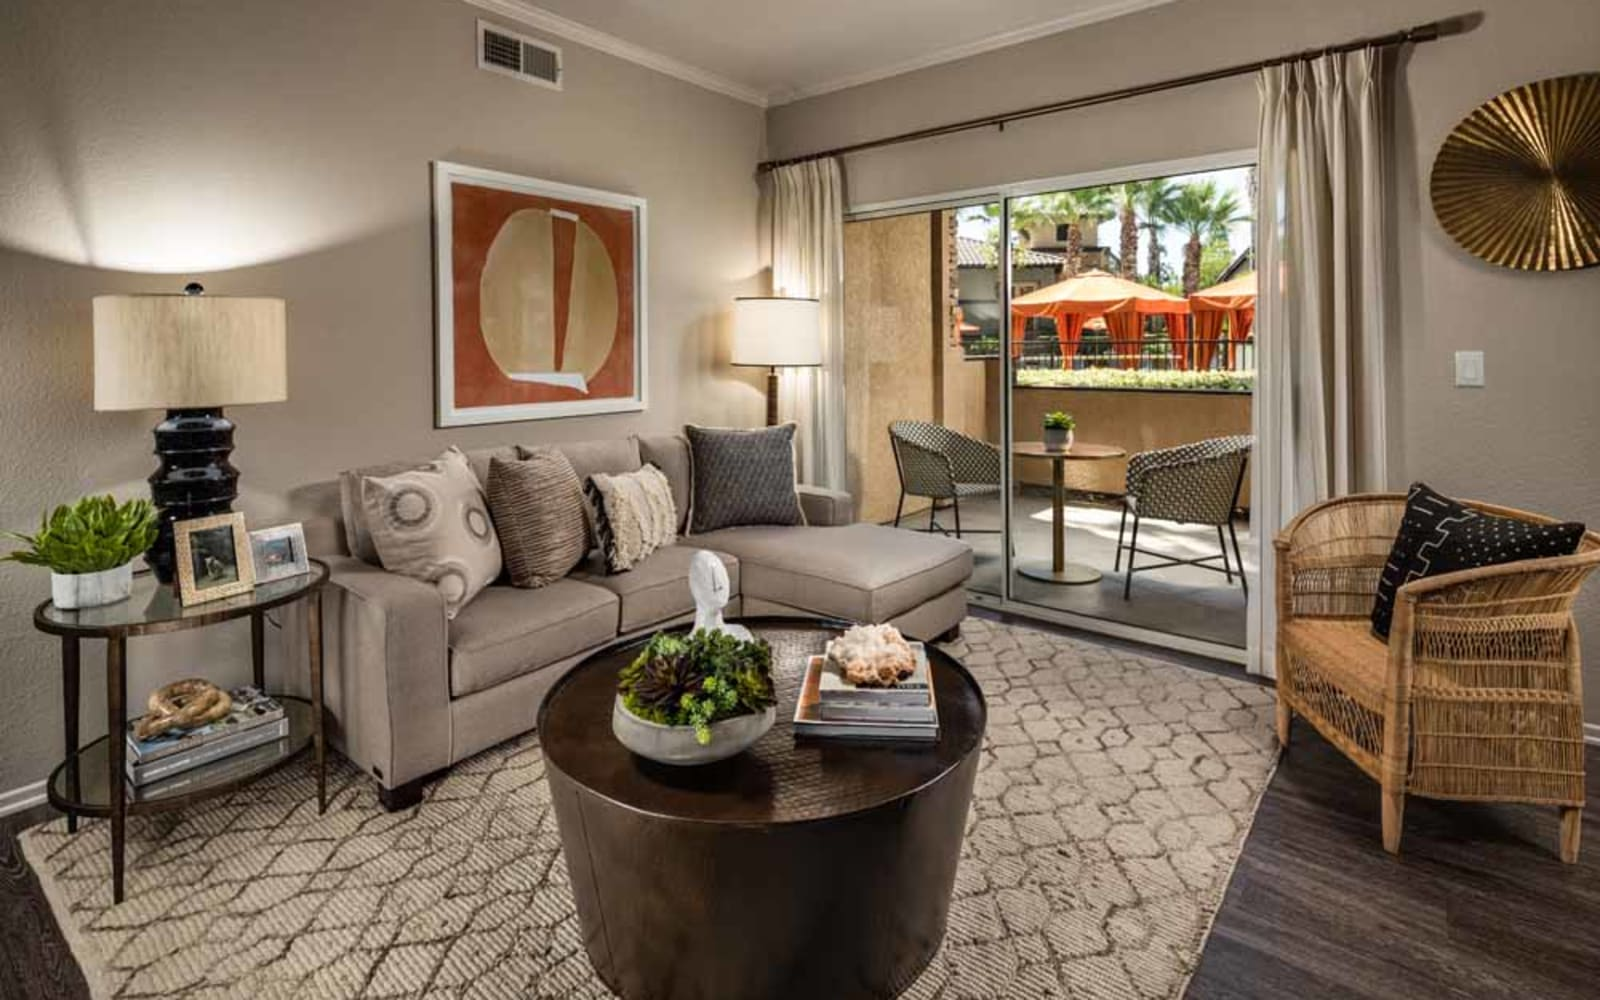 Comfortable seating in a living room at Colonnade at Sycamore Highlands in Riverside, California